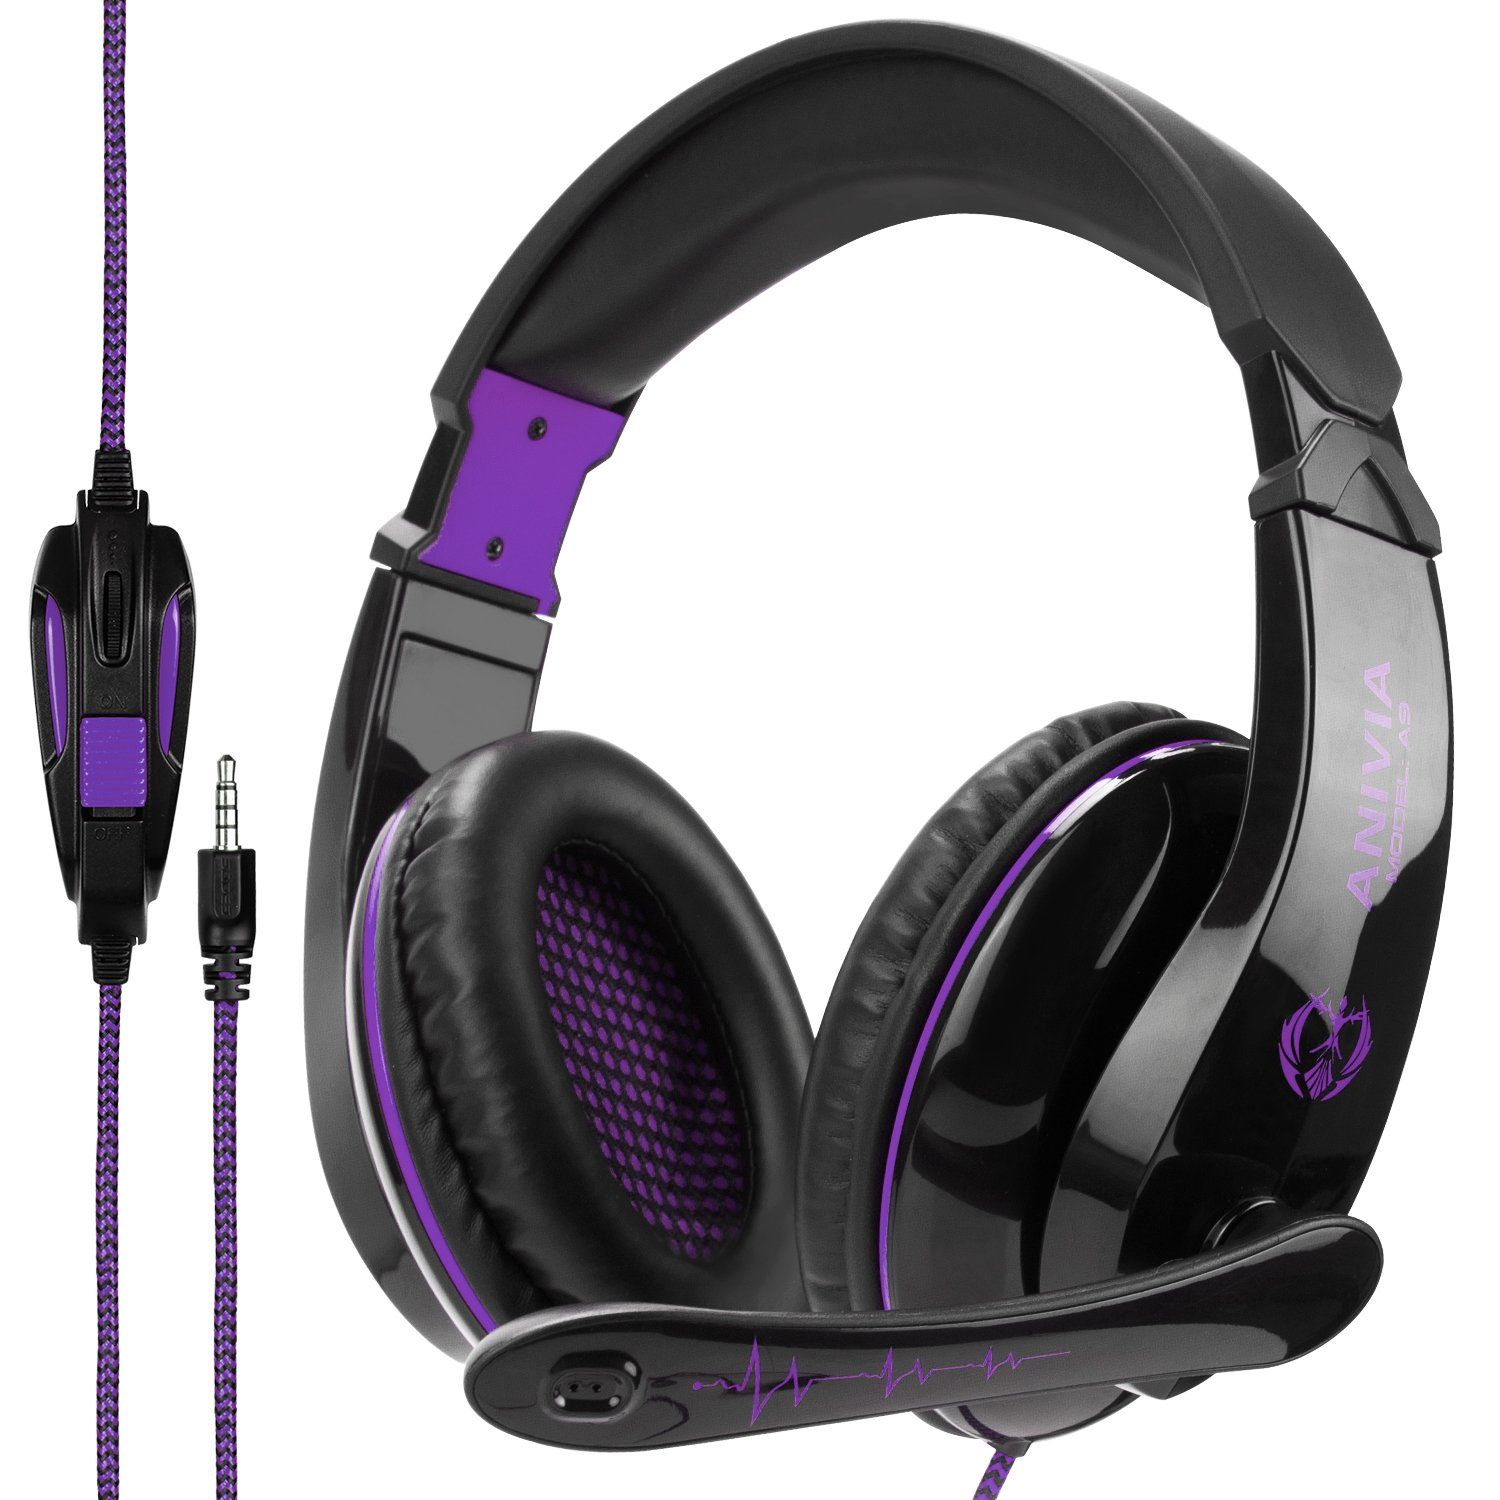 su Black Gaming Earphone One-ear Gamer Headset Wired Headphone with Mic for PS4